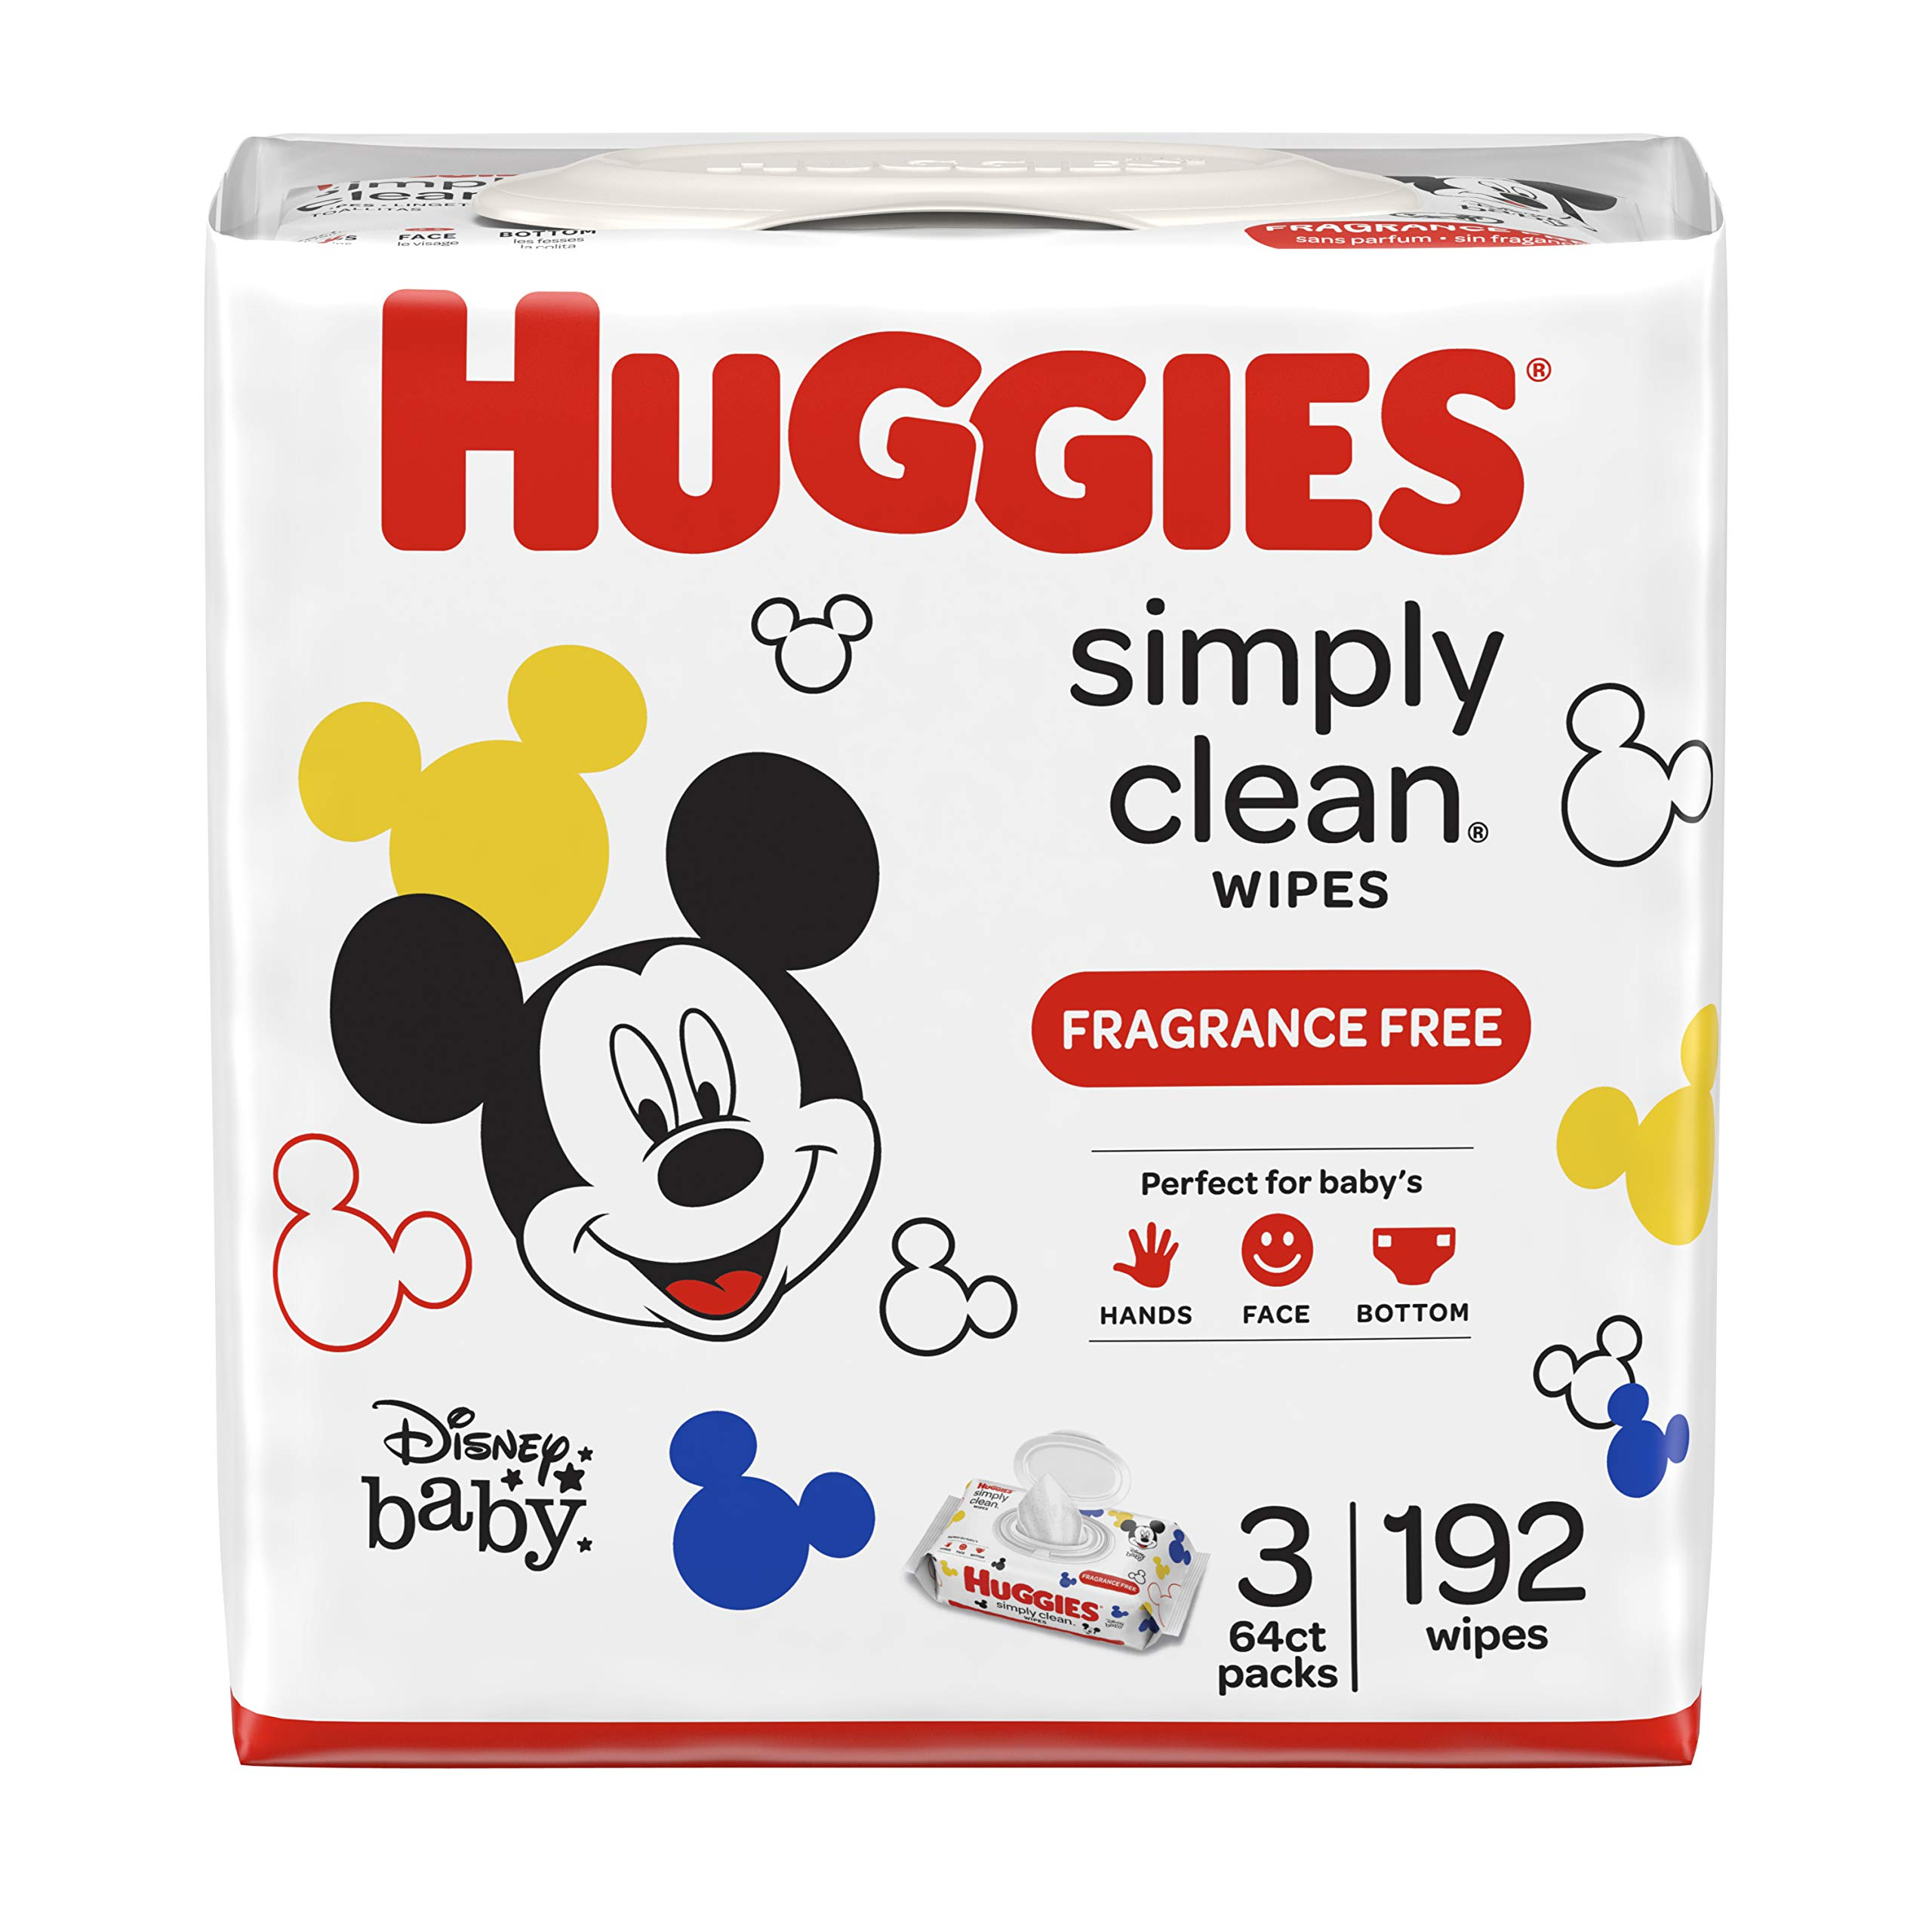 Huggies Simply Clean Baby Wipes, Unscented, 3 Ct